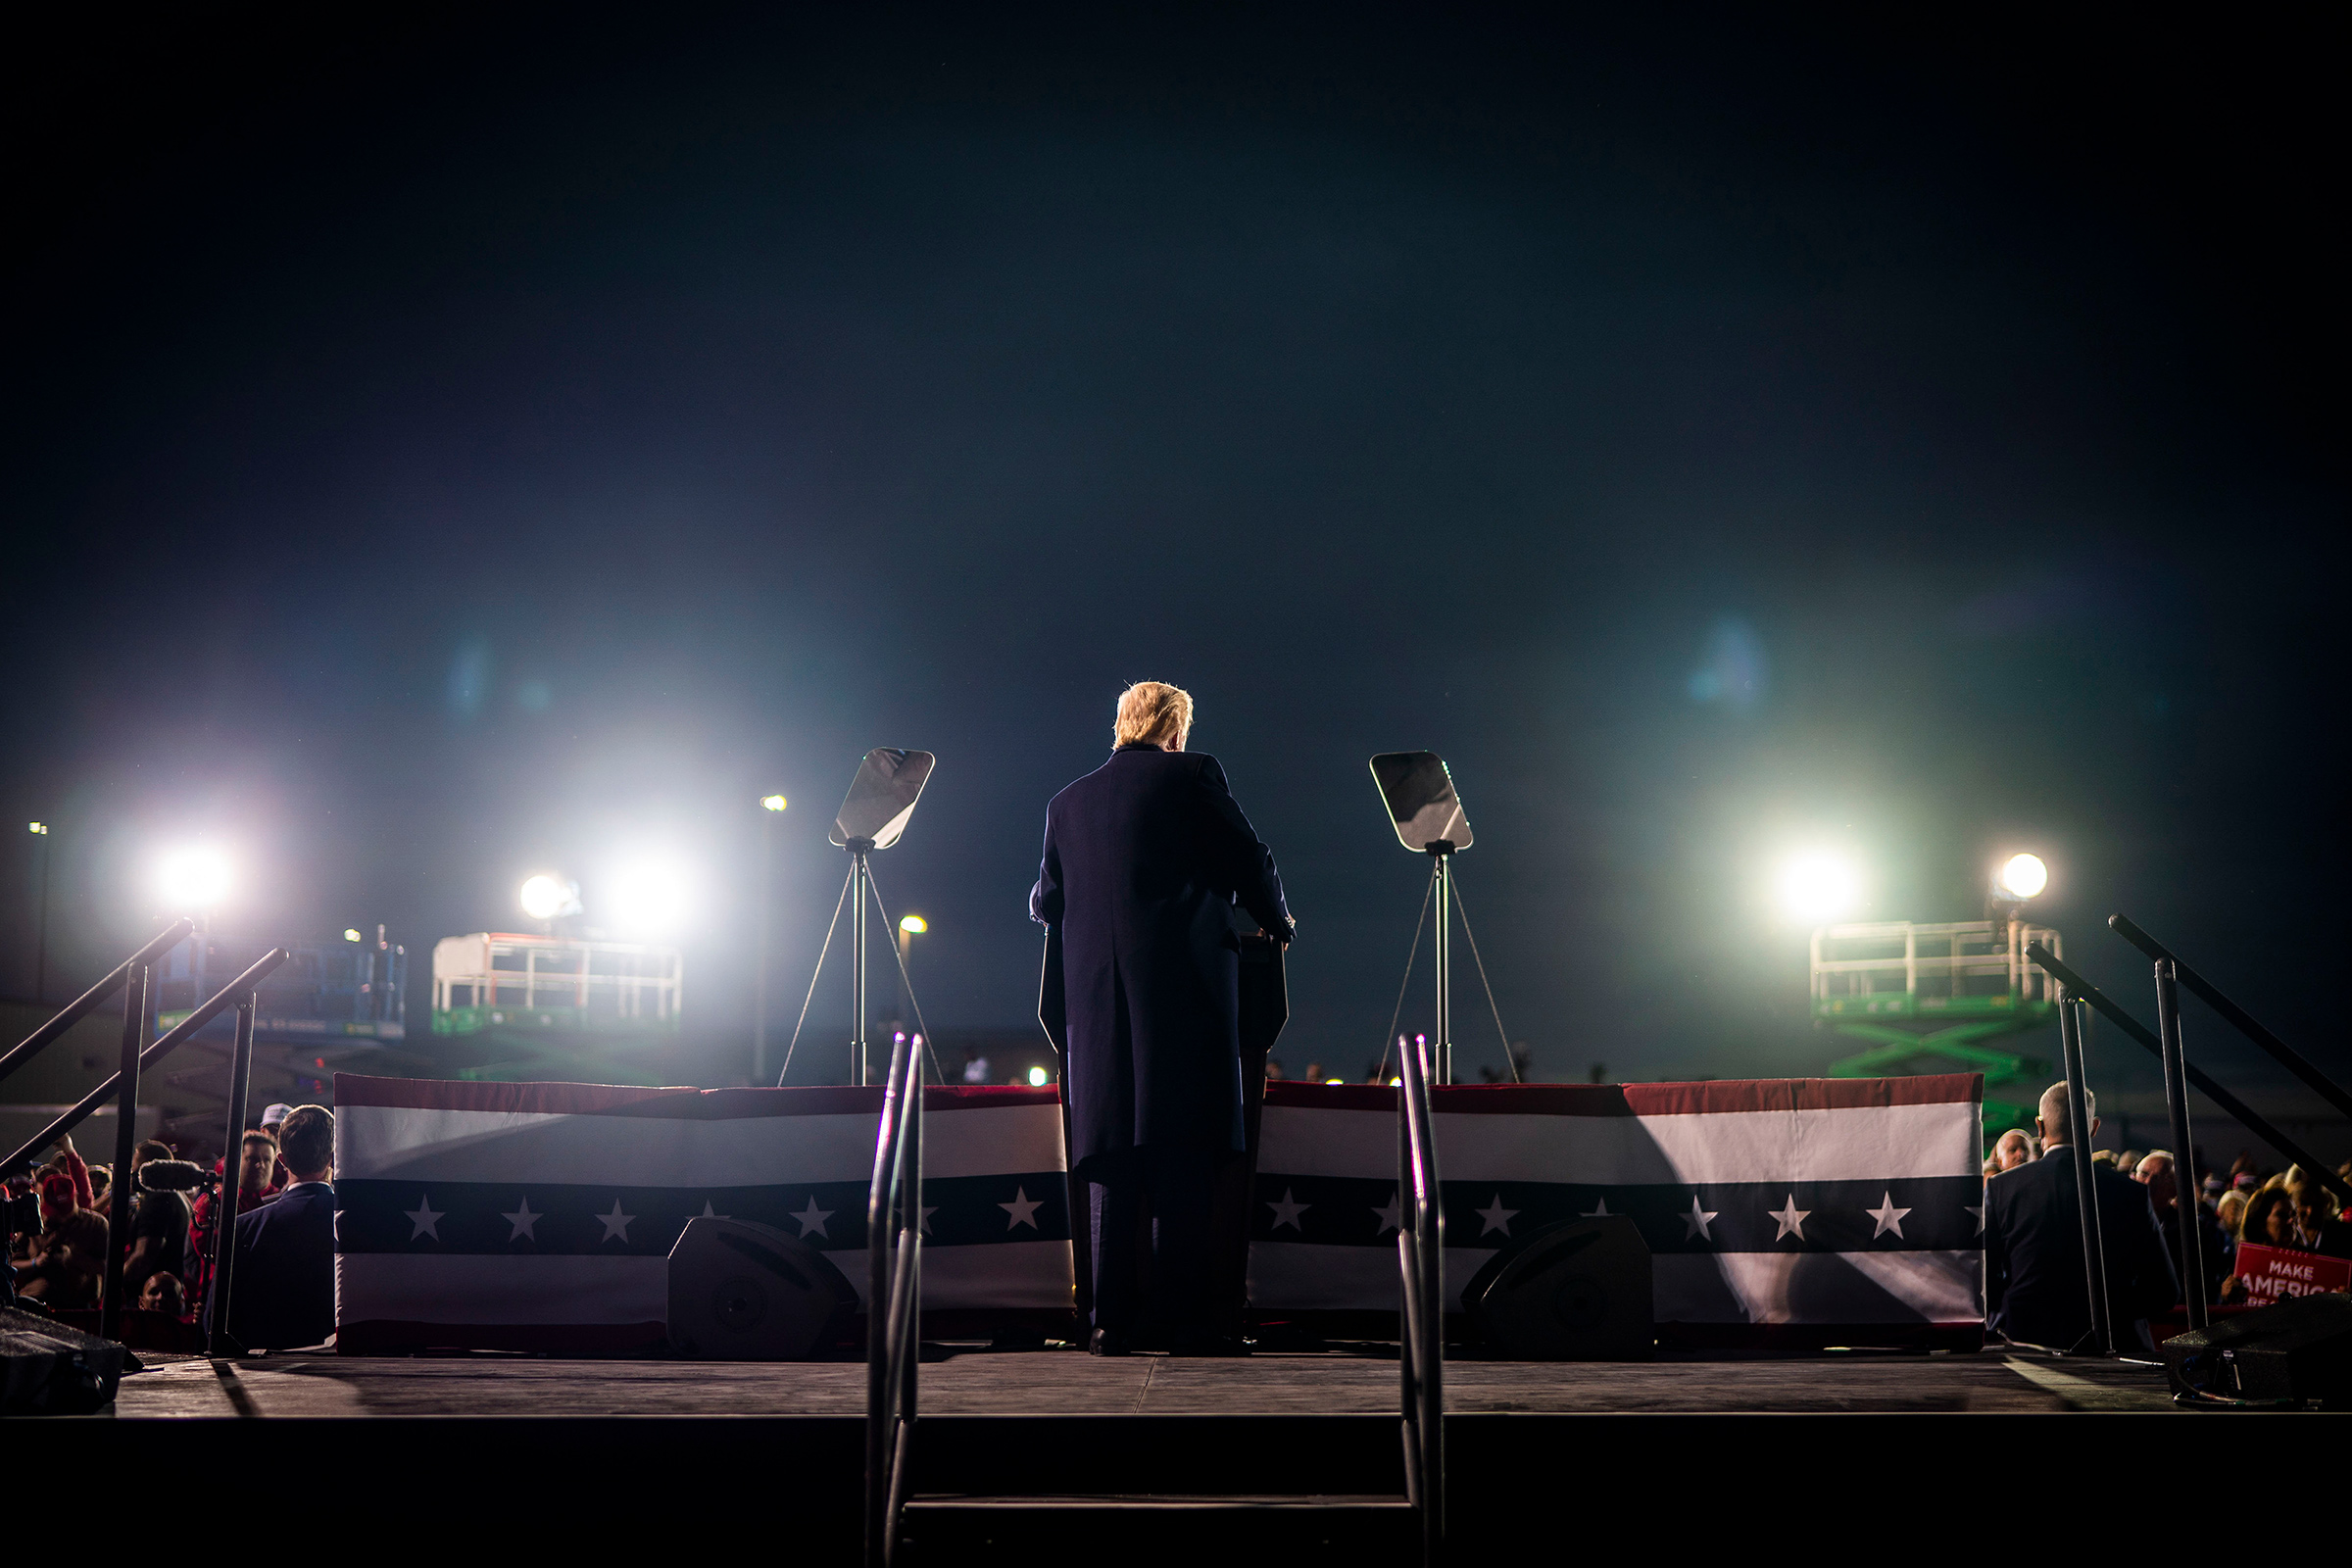 President Trump speaks during a campaign rally in Des Moines, Iowa, on Oct. 14, 2020.